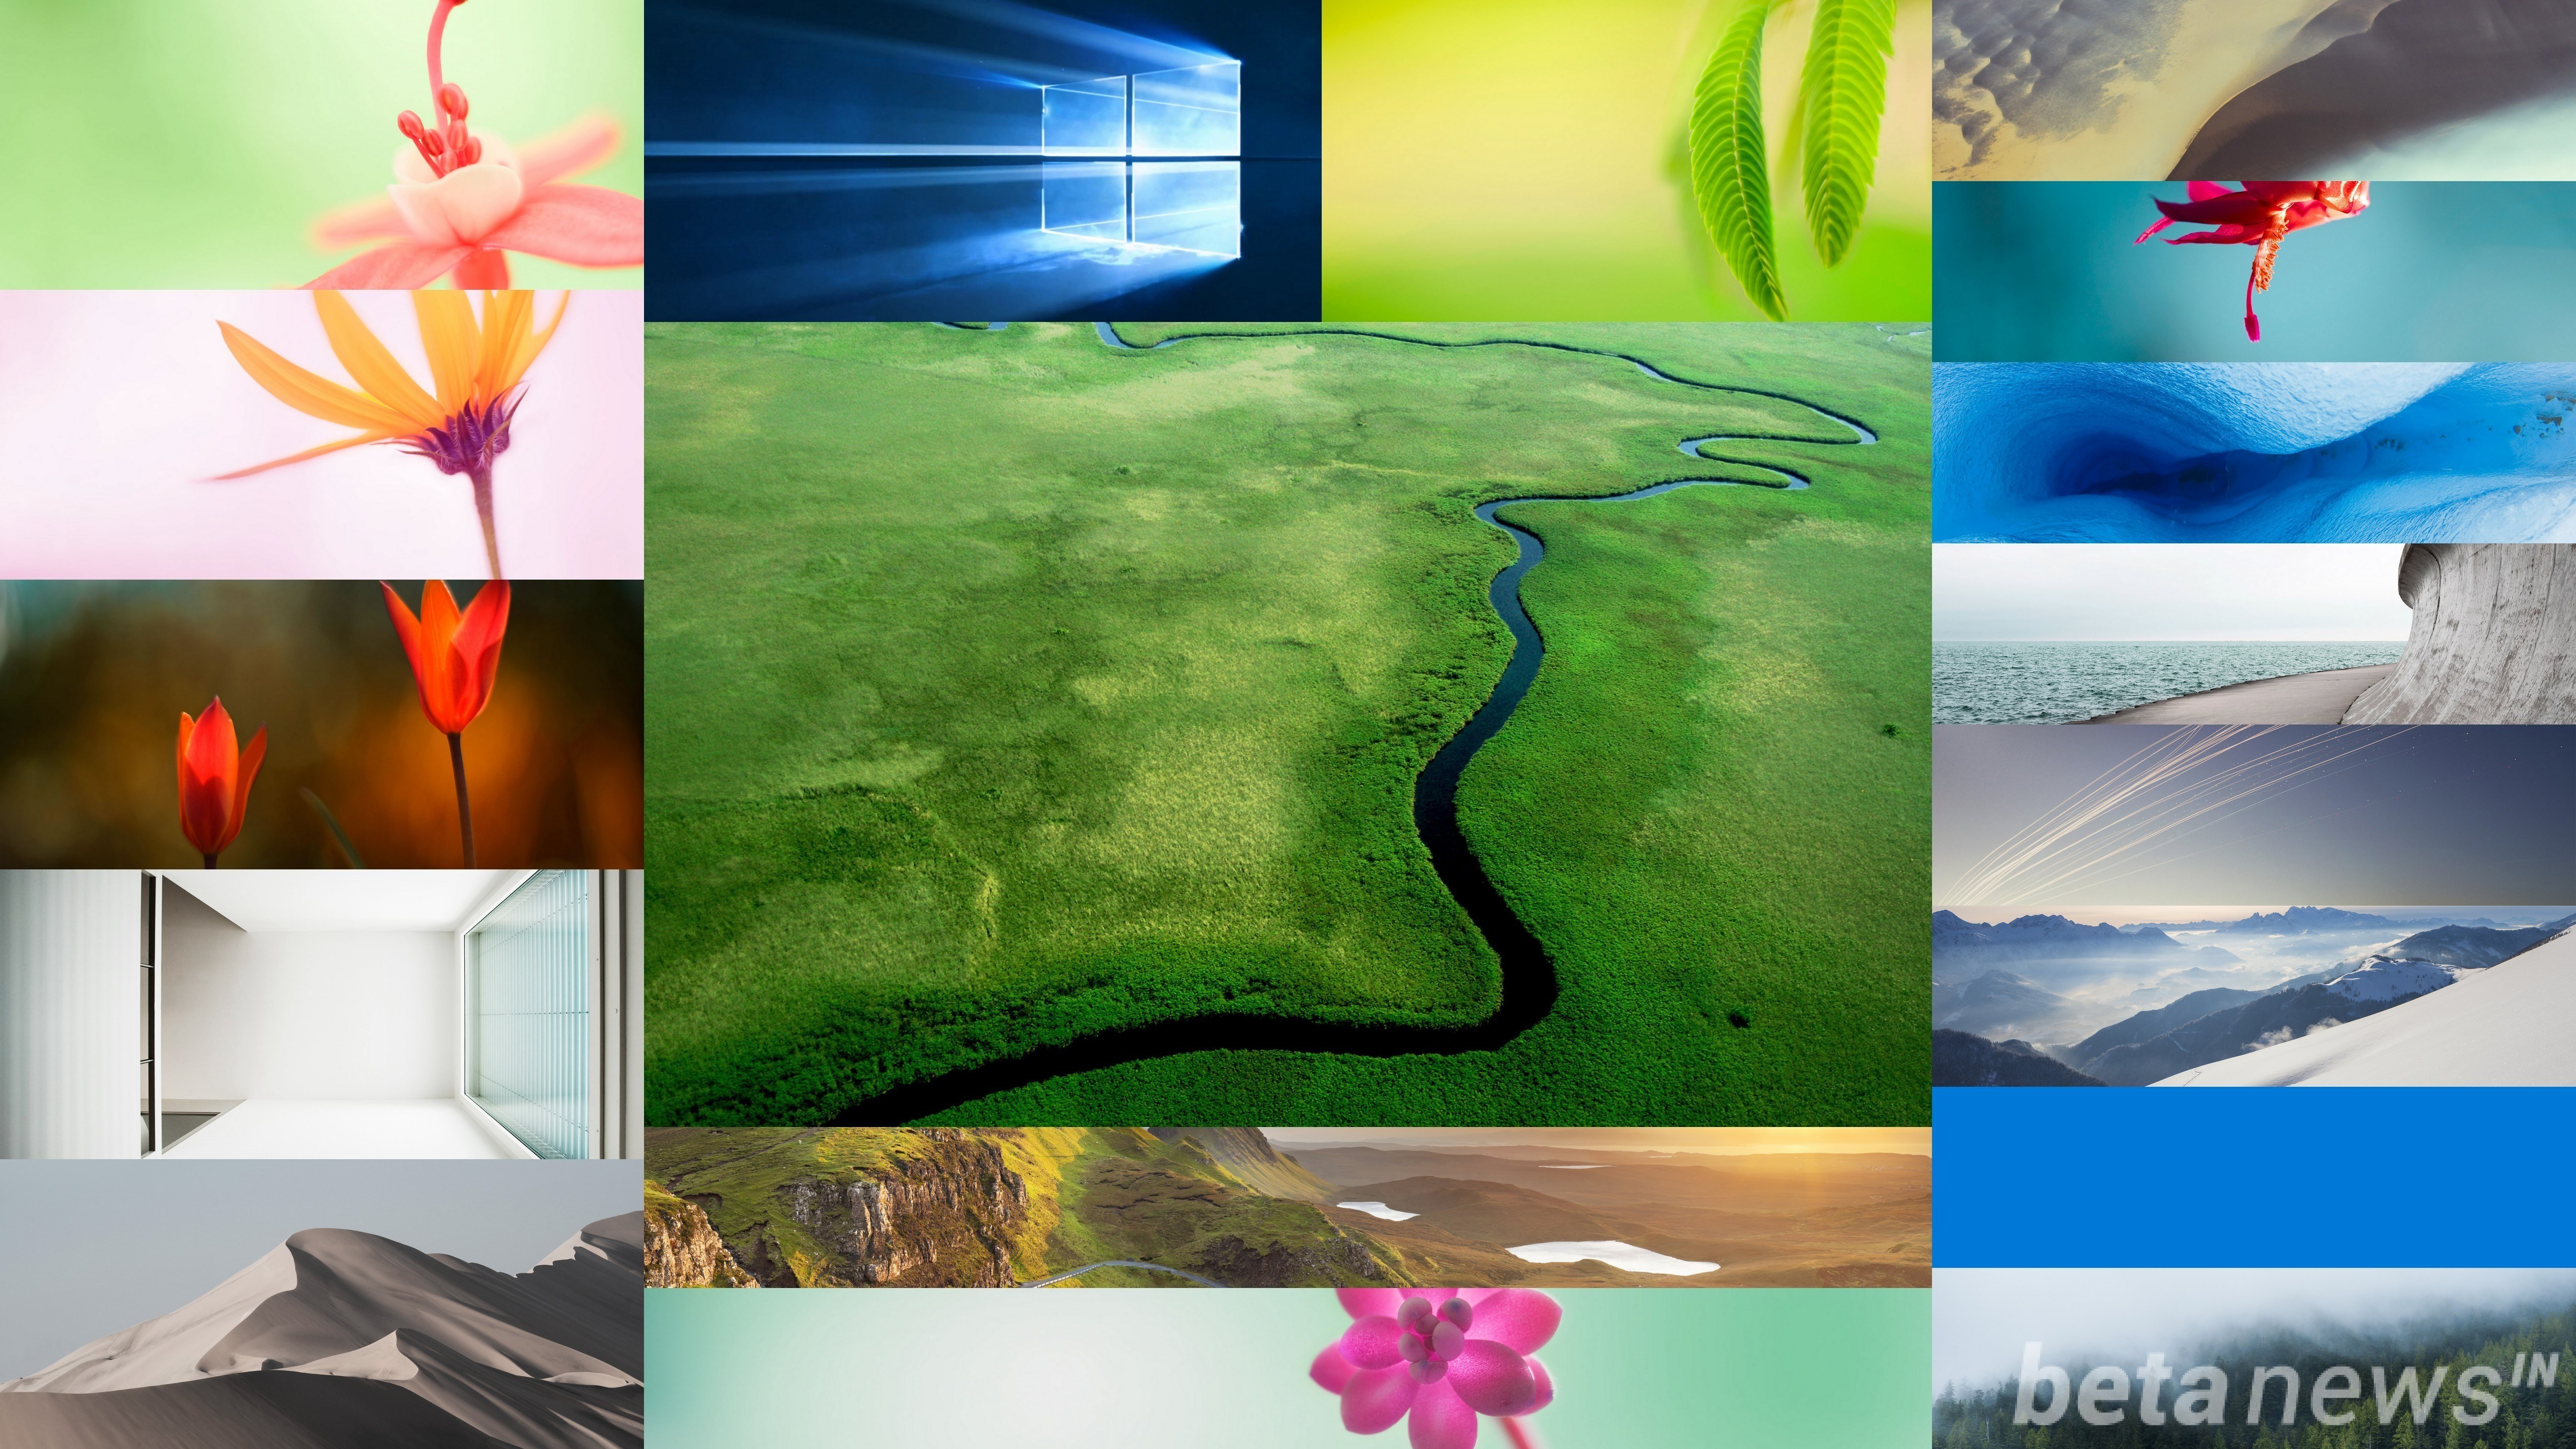 Download Windows 10 Wallpapers Pack 18 Win 10 Wallpapers